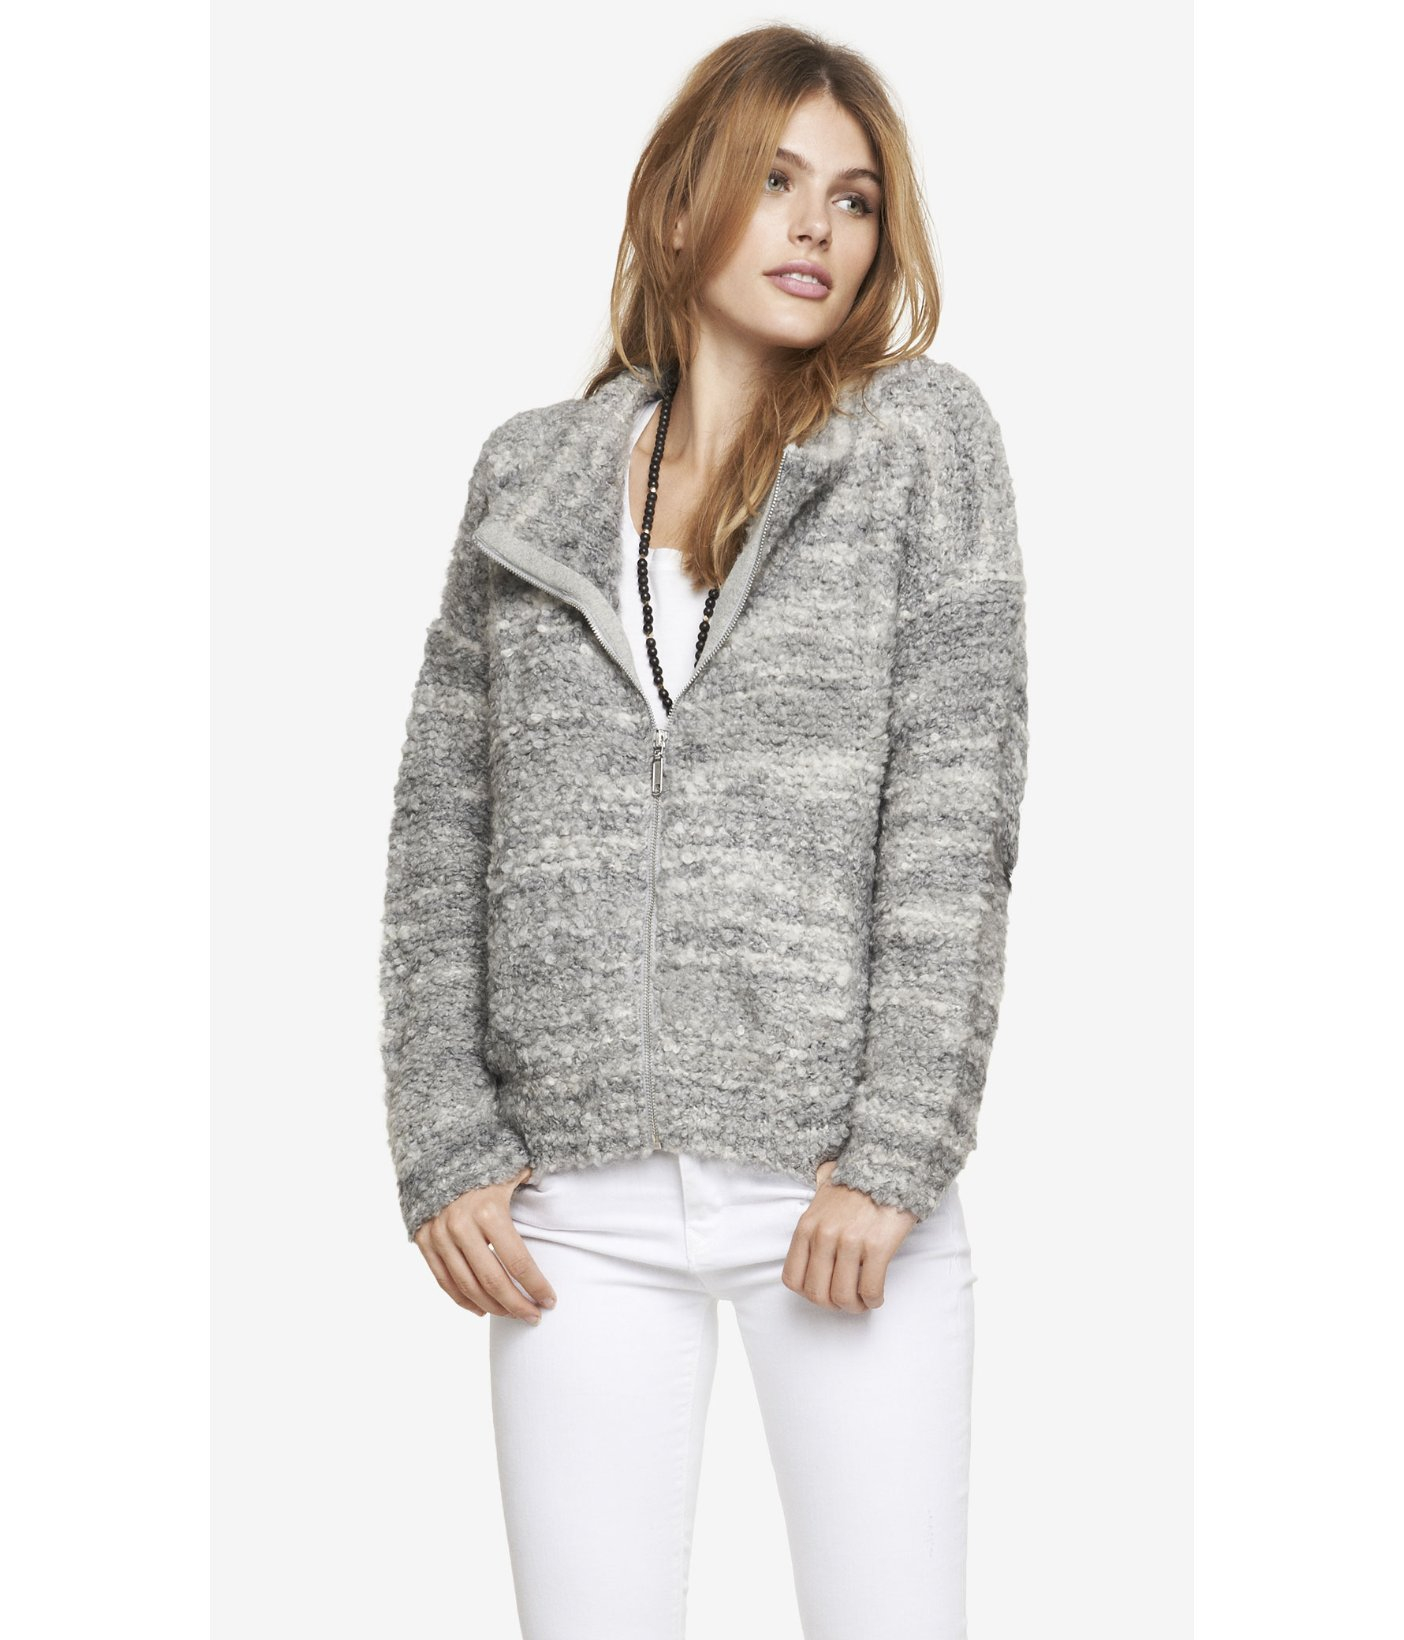 c80cb45b4363 Lyst - Express Cowl Neck Boucle Sweater Jacket in Gray